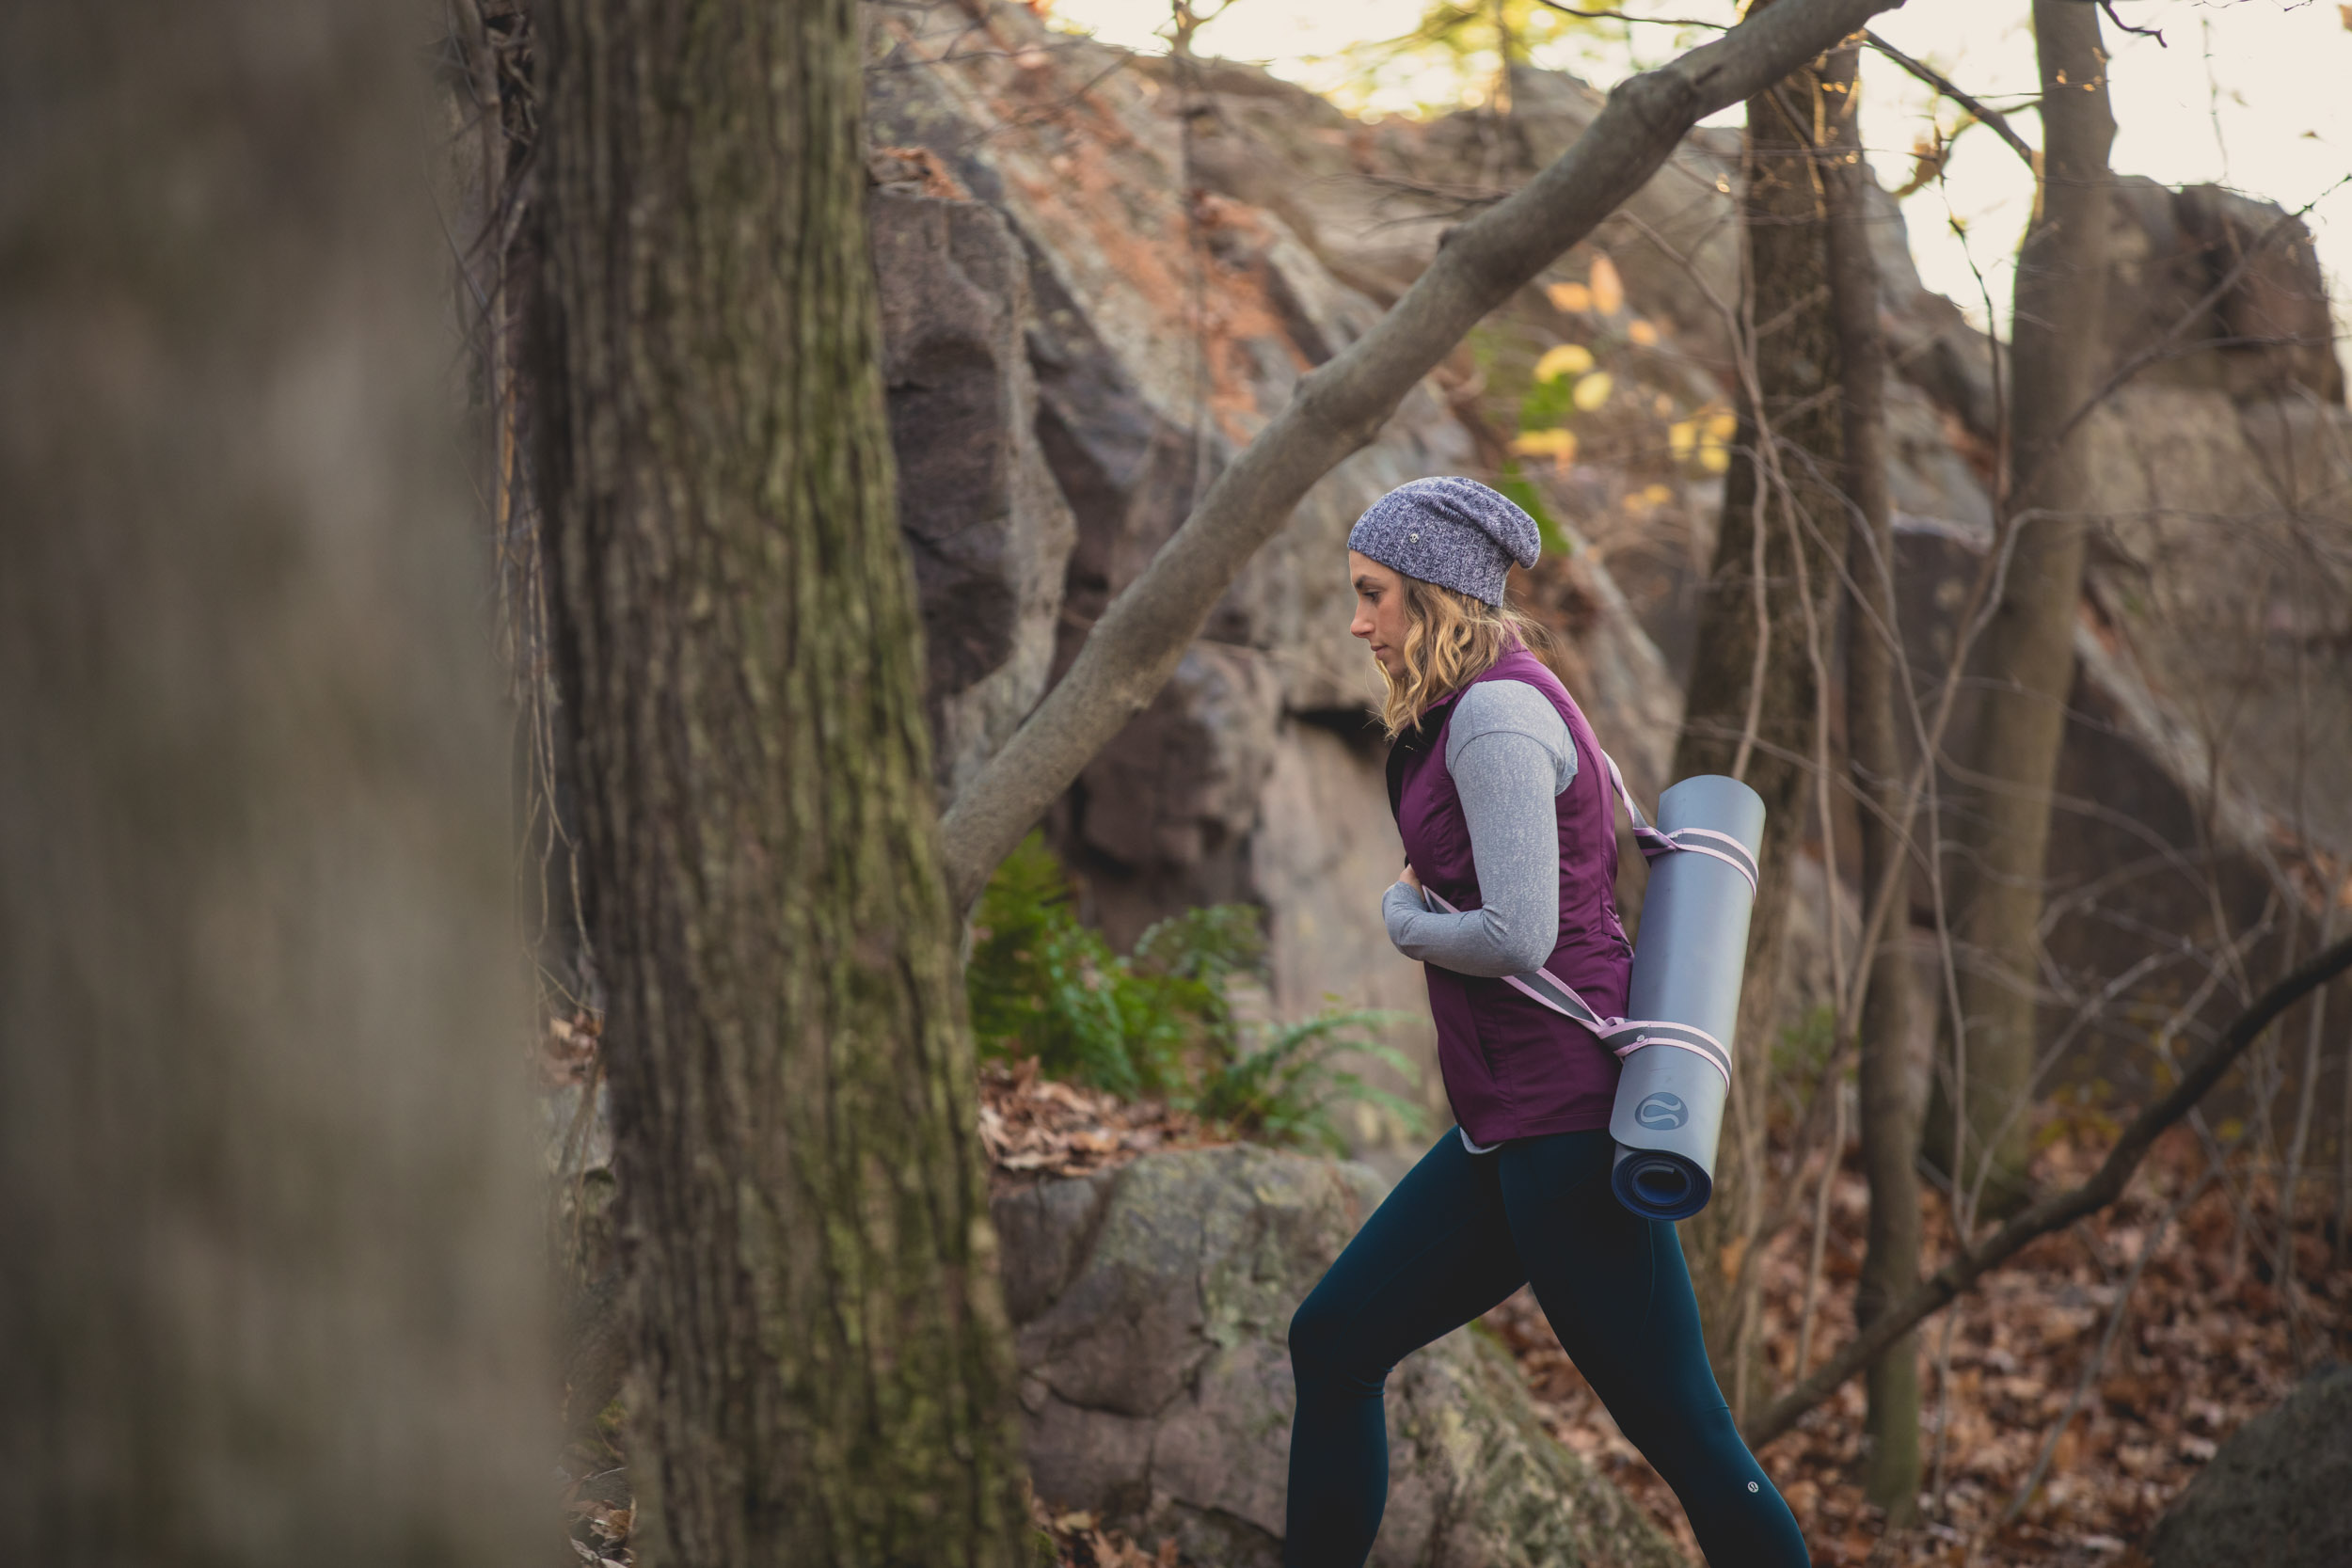 lululemon - the air out there - Devil's Lake-237-Edit.jpg